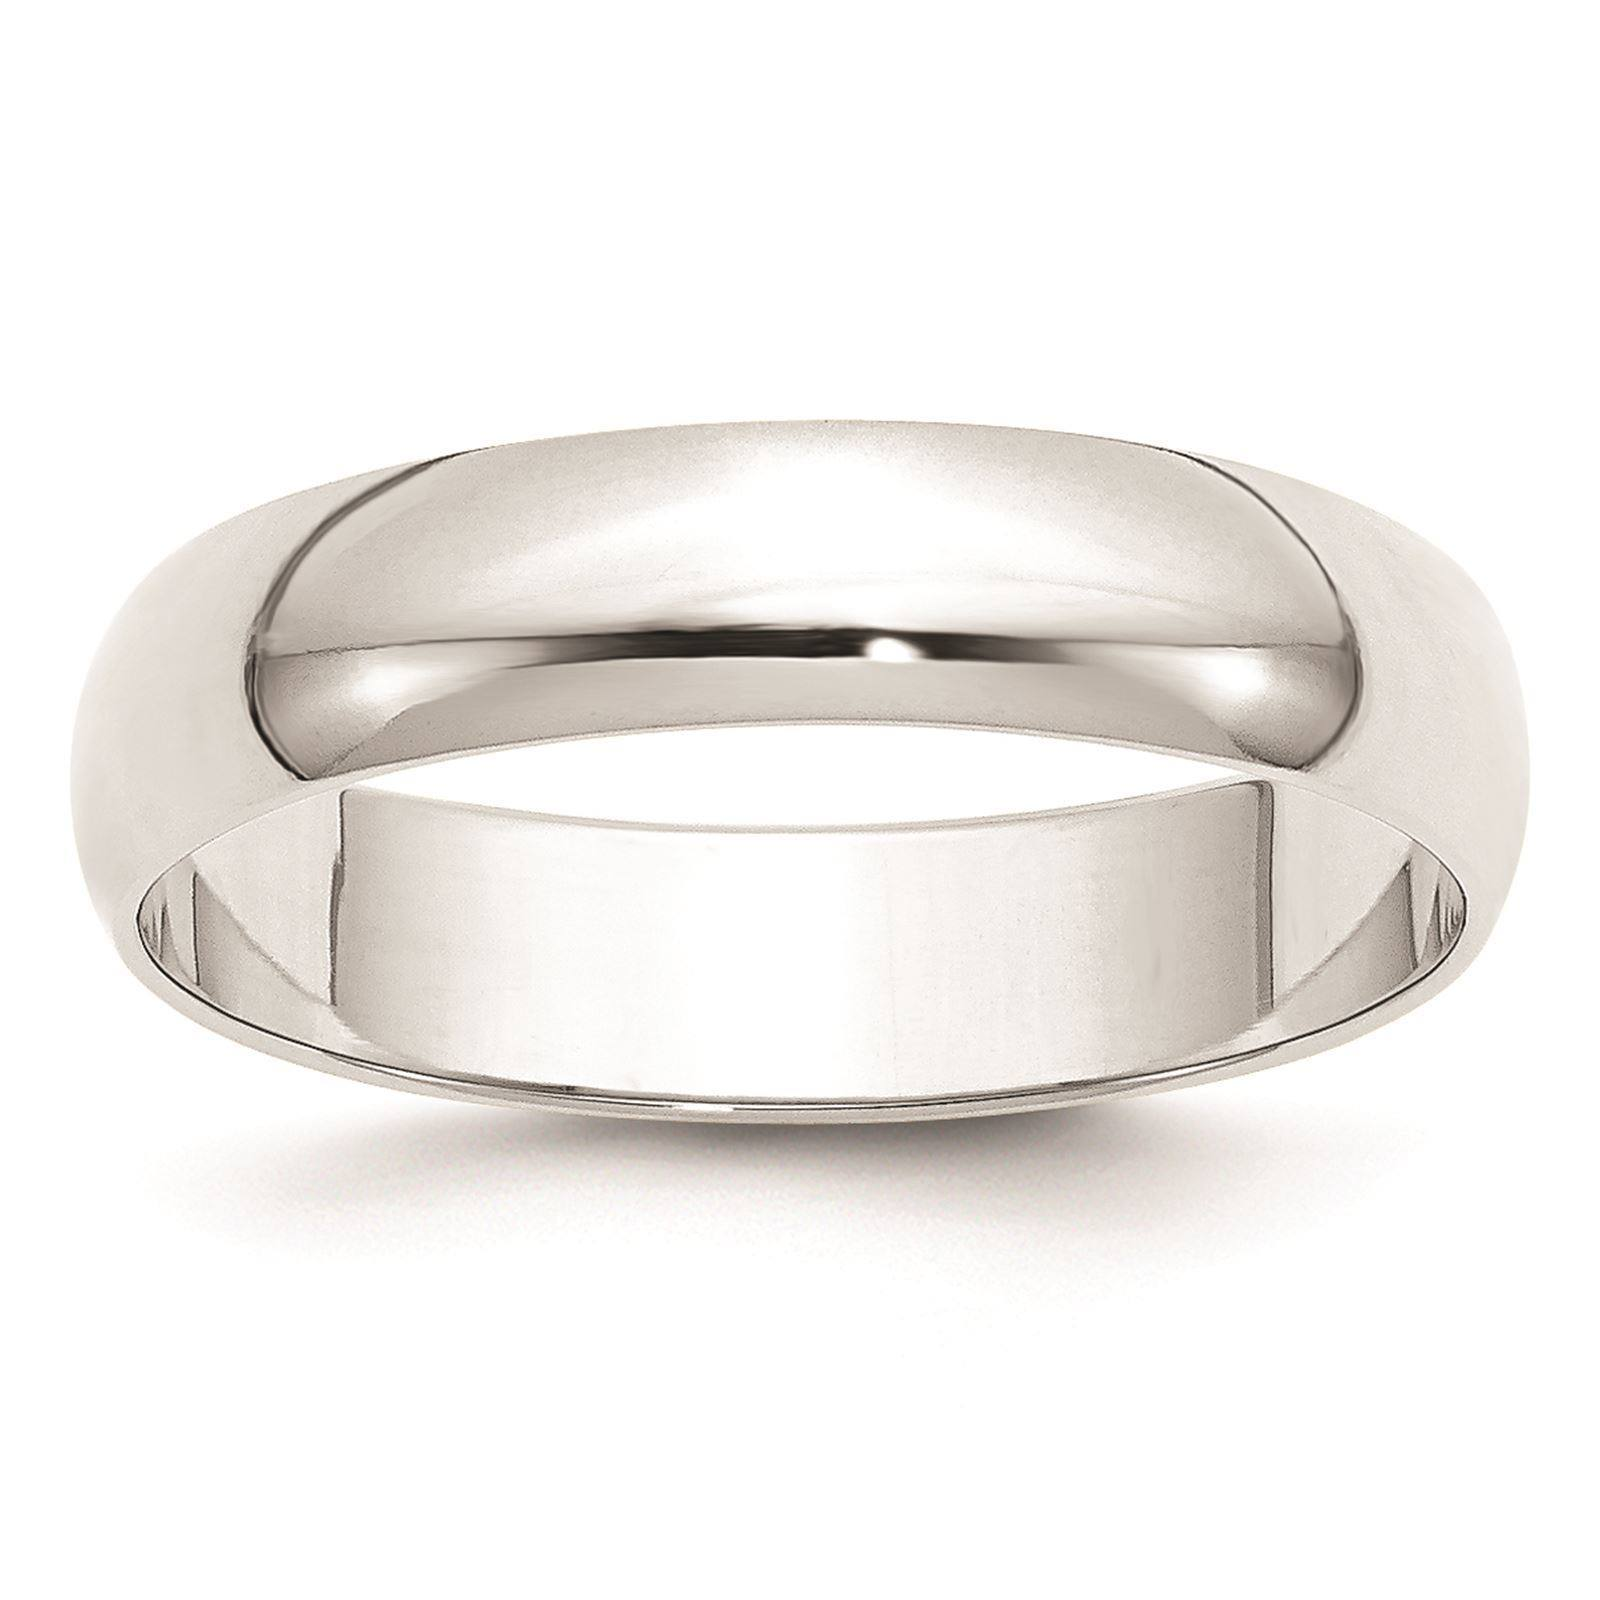 mens white gold wedding bands - Mens Gold Wedding Rings